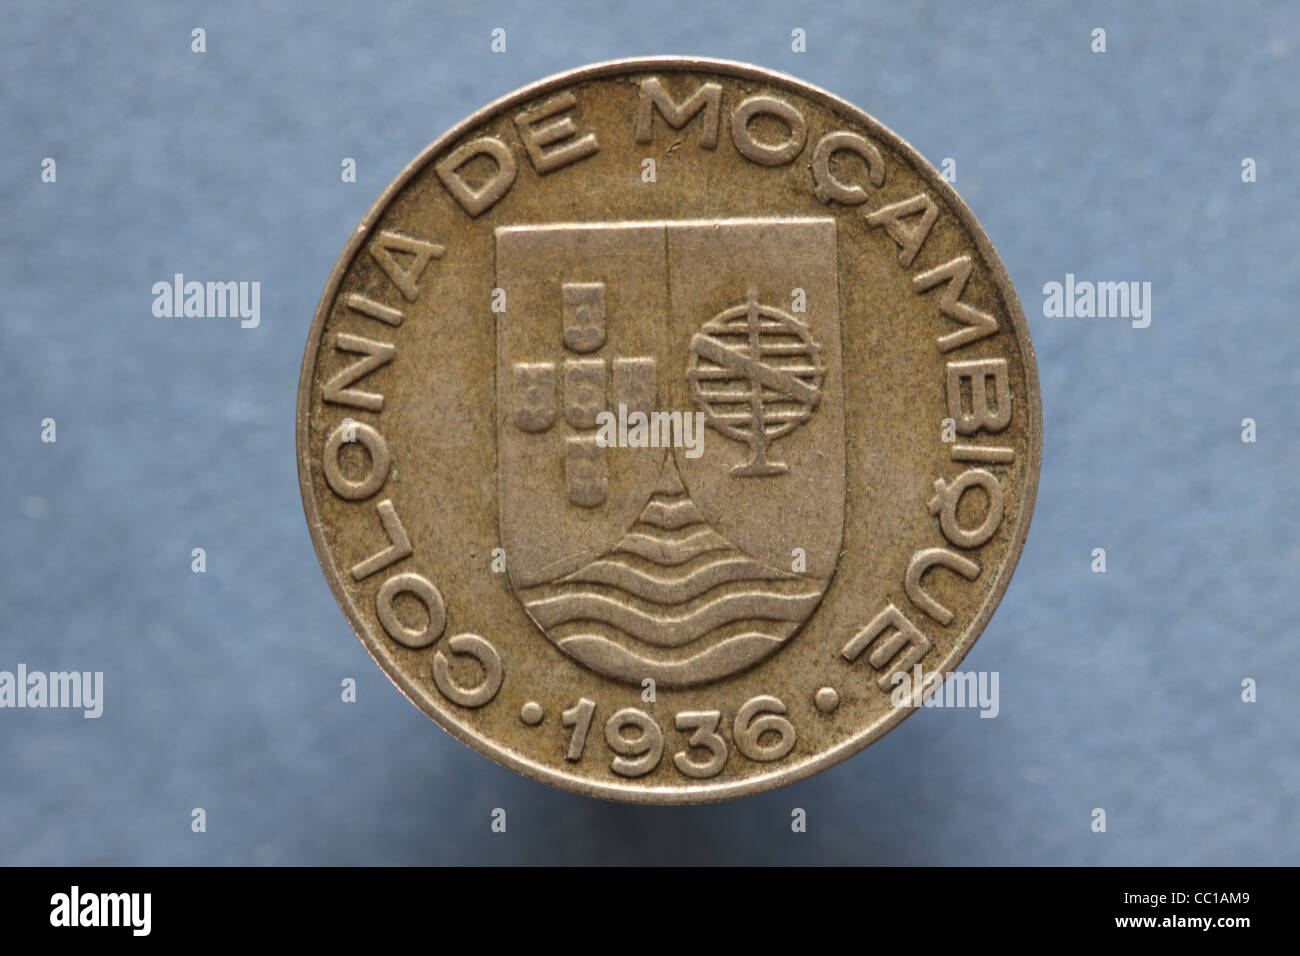 Colonia De Mocambique coin dated 1936 a Portuguese African colony now independent Mozambique - Stock Image